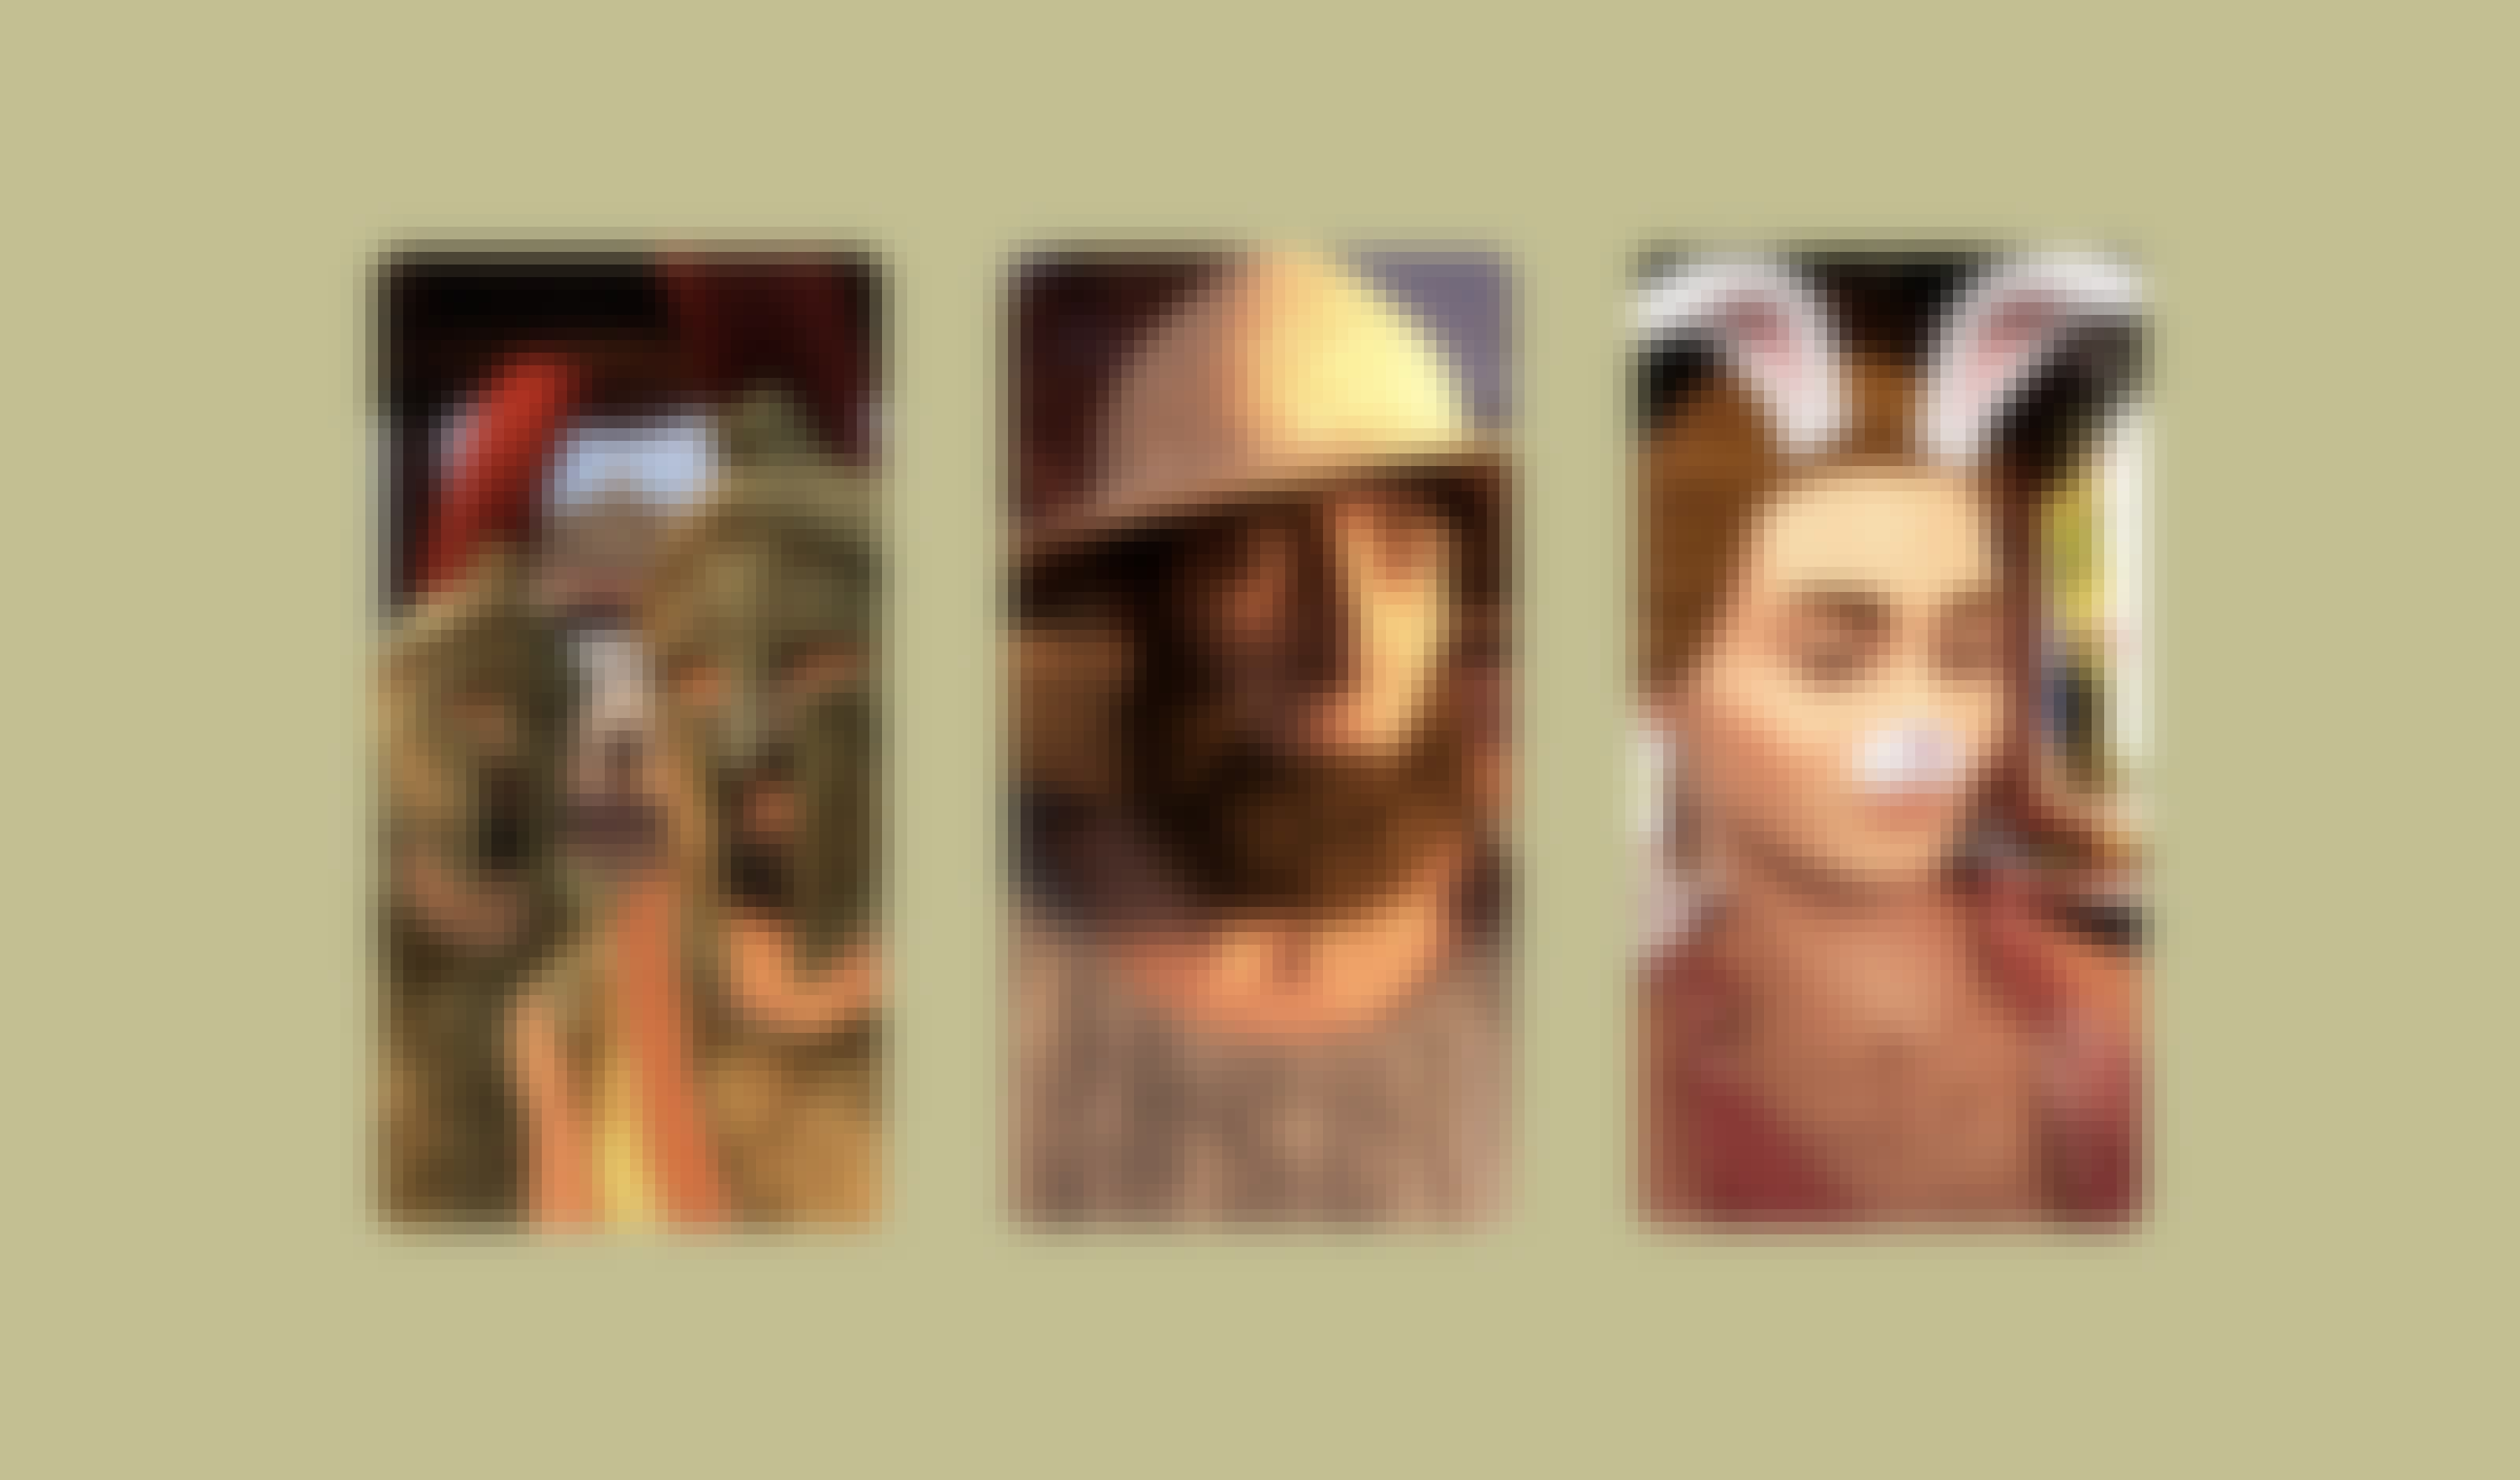 3 pictures of non-playable characters in Assassin's Creed Odyssey